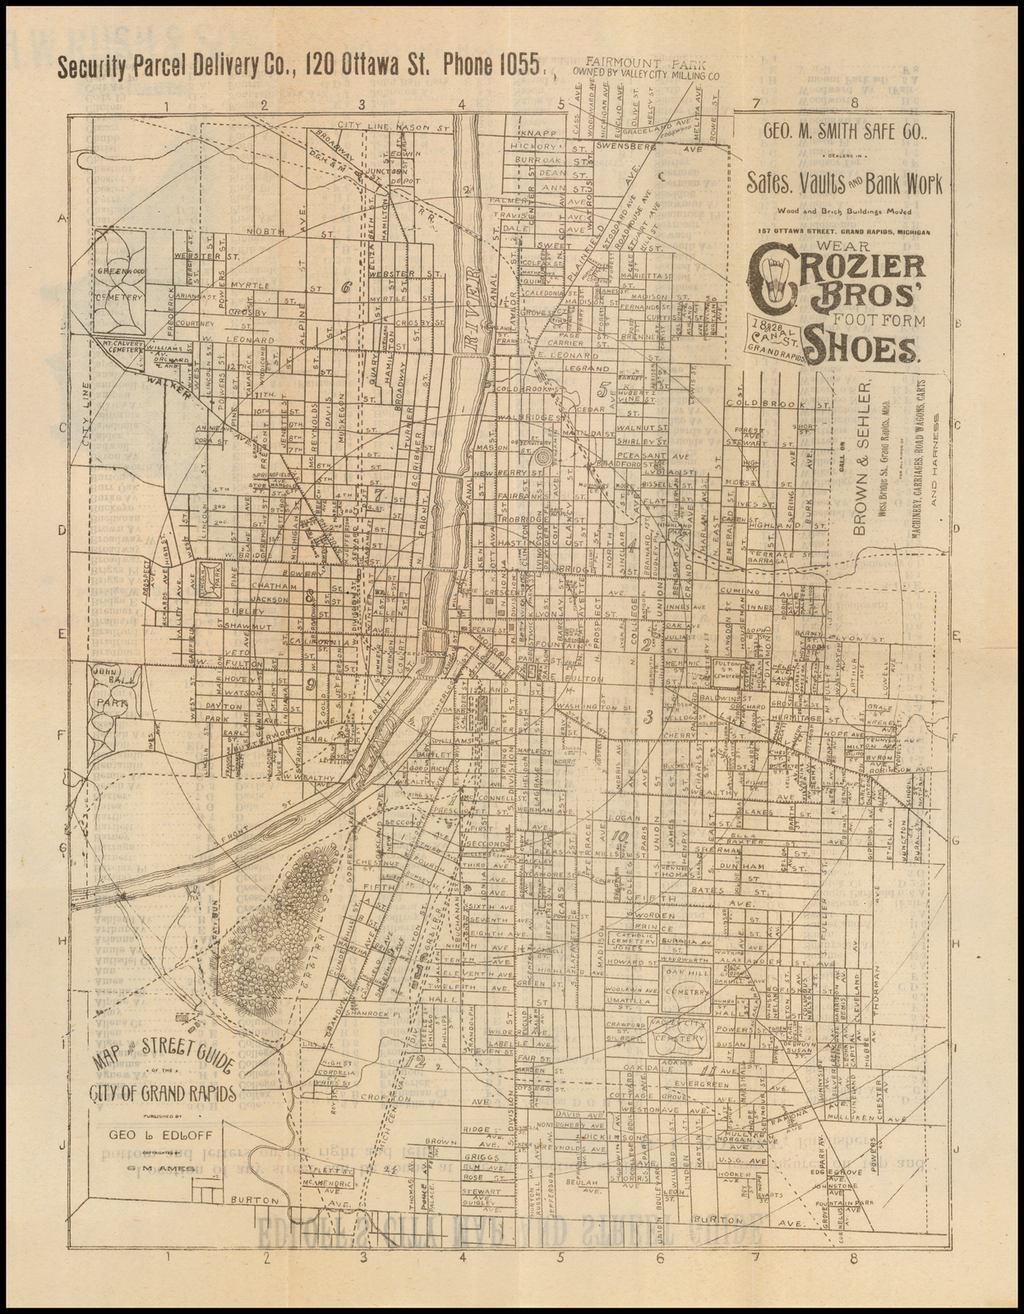 Map and Street Guide of the City of Grand Rapids Published By Geo. L. Edloff By